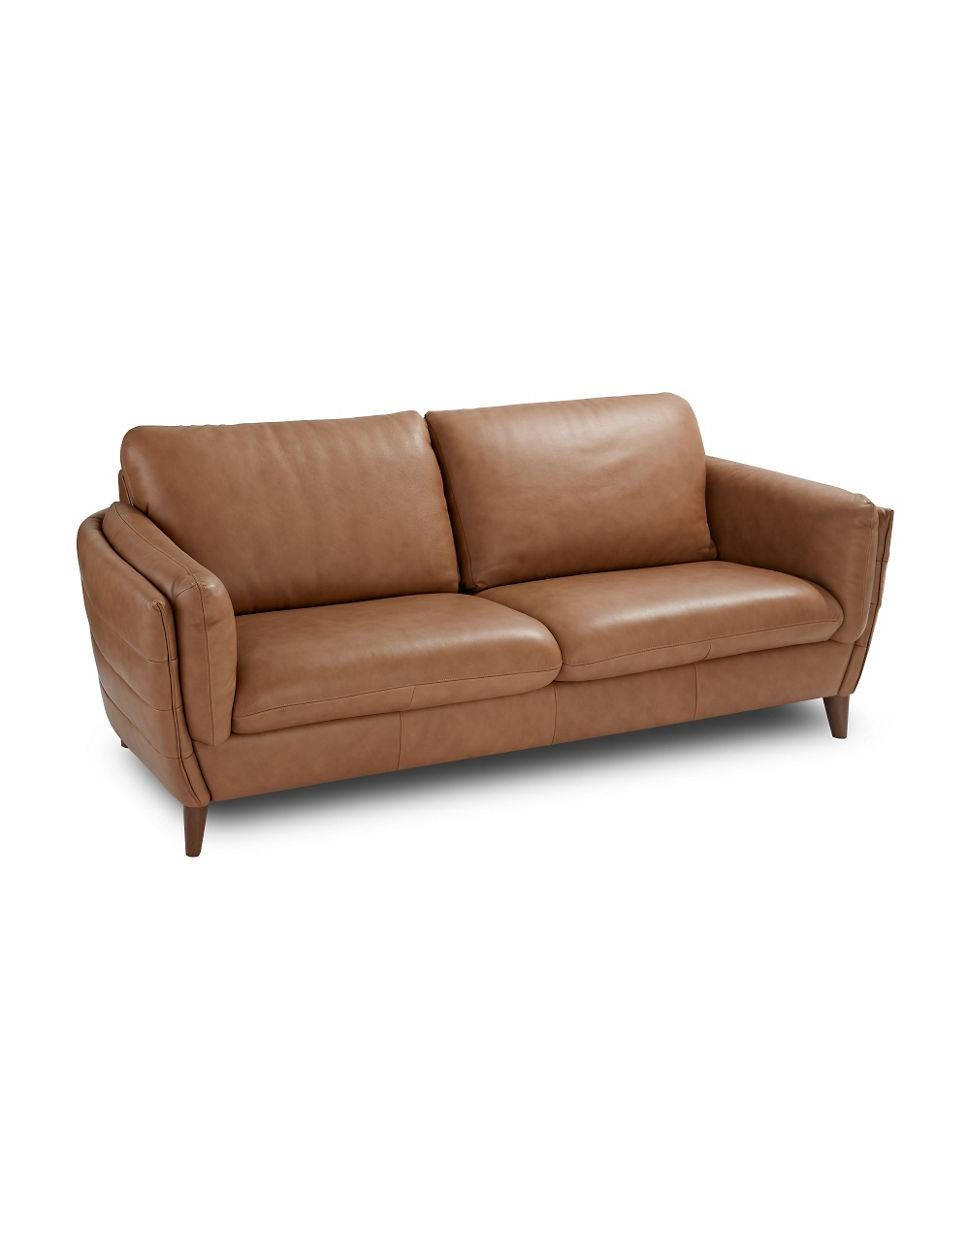 Sofa: Sears Sleeper Sofa | Sears Sofa Bed | Loveseat Cheap with Sears Sleeper Sofas (Image 13 of 15)